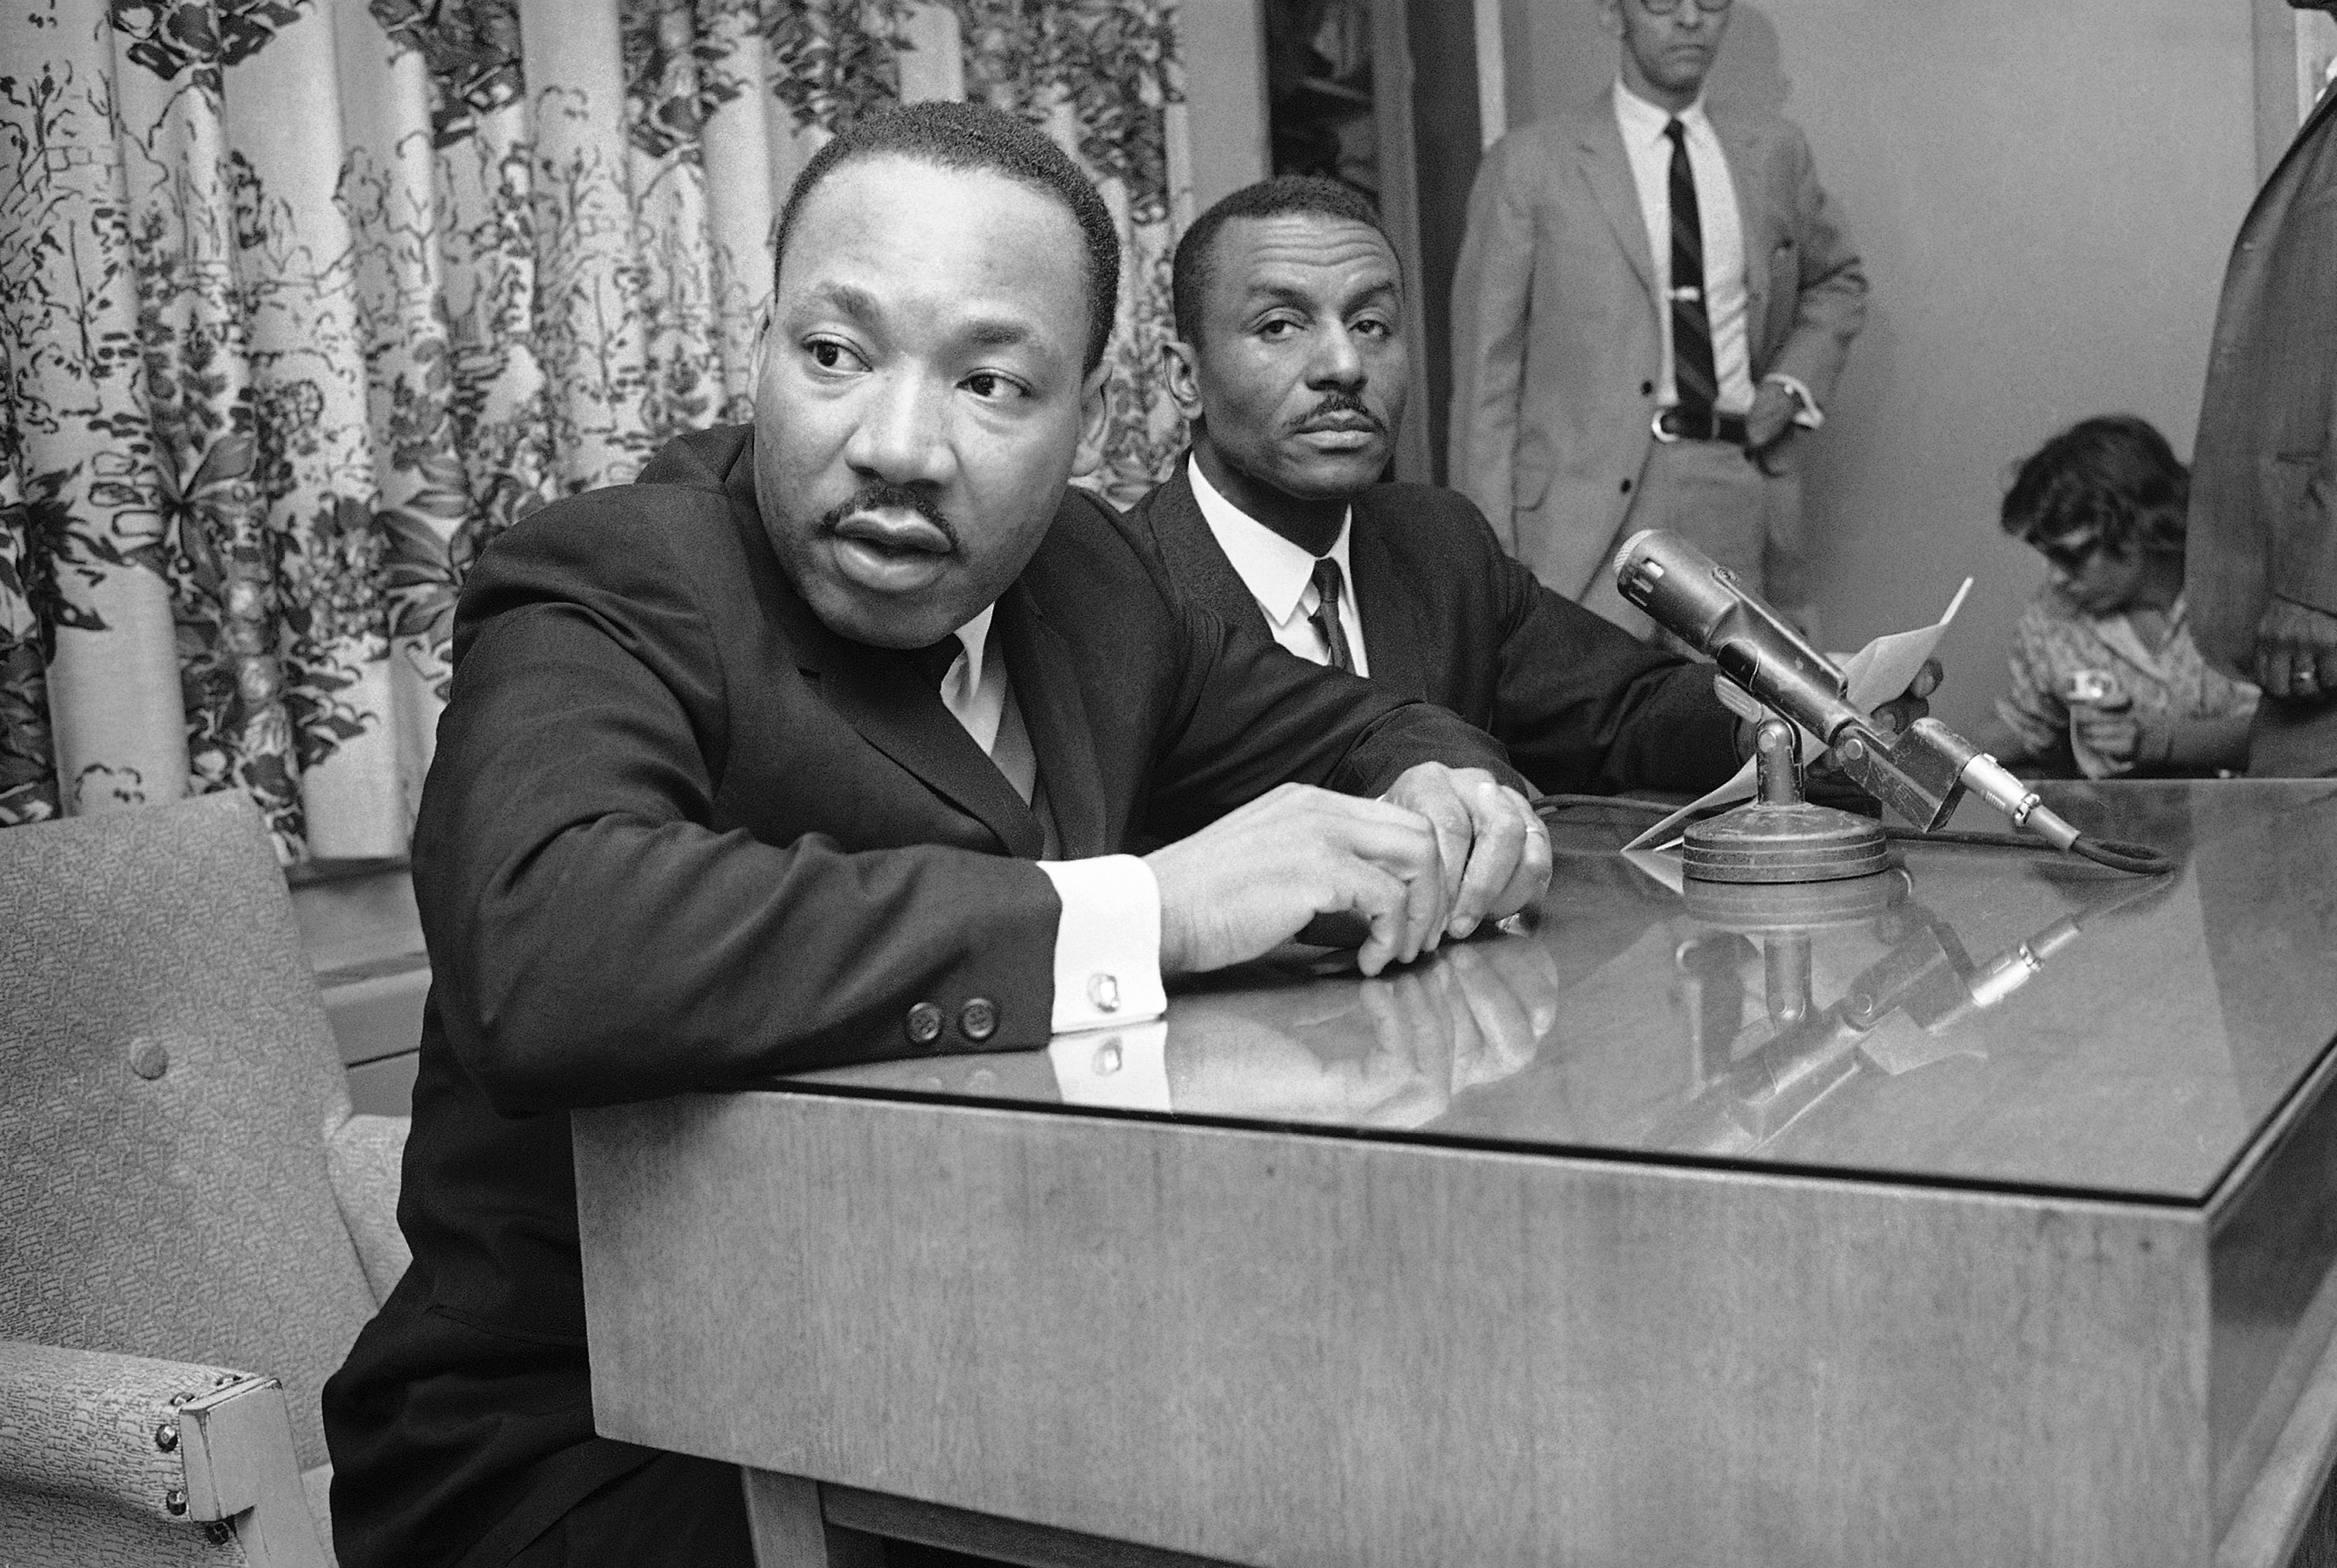 I'm an MLK Scholar – and I'll Never Be Able to View King in the Same Light